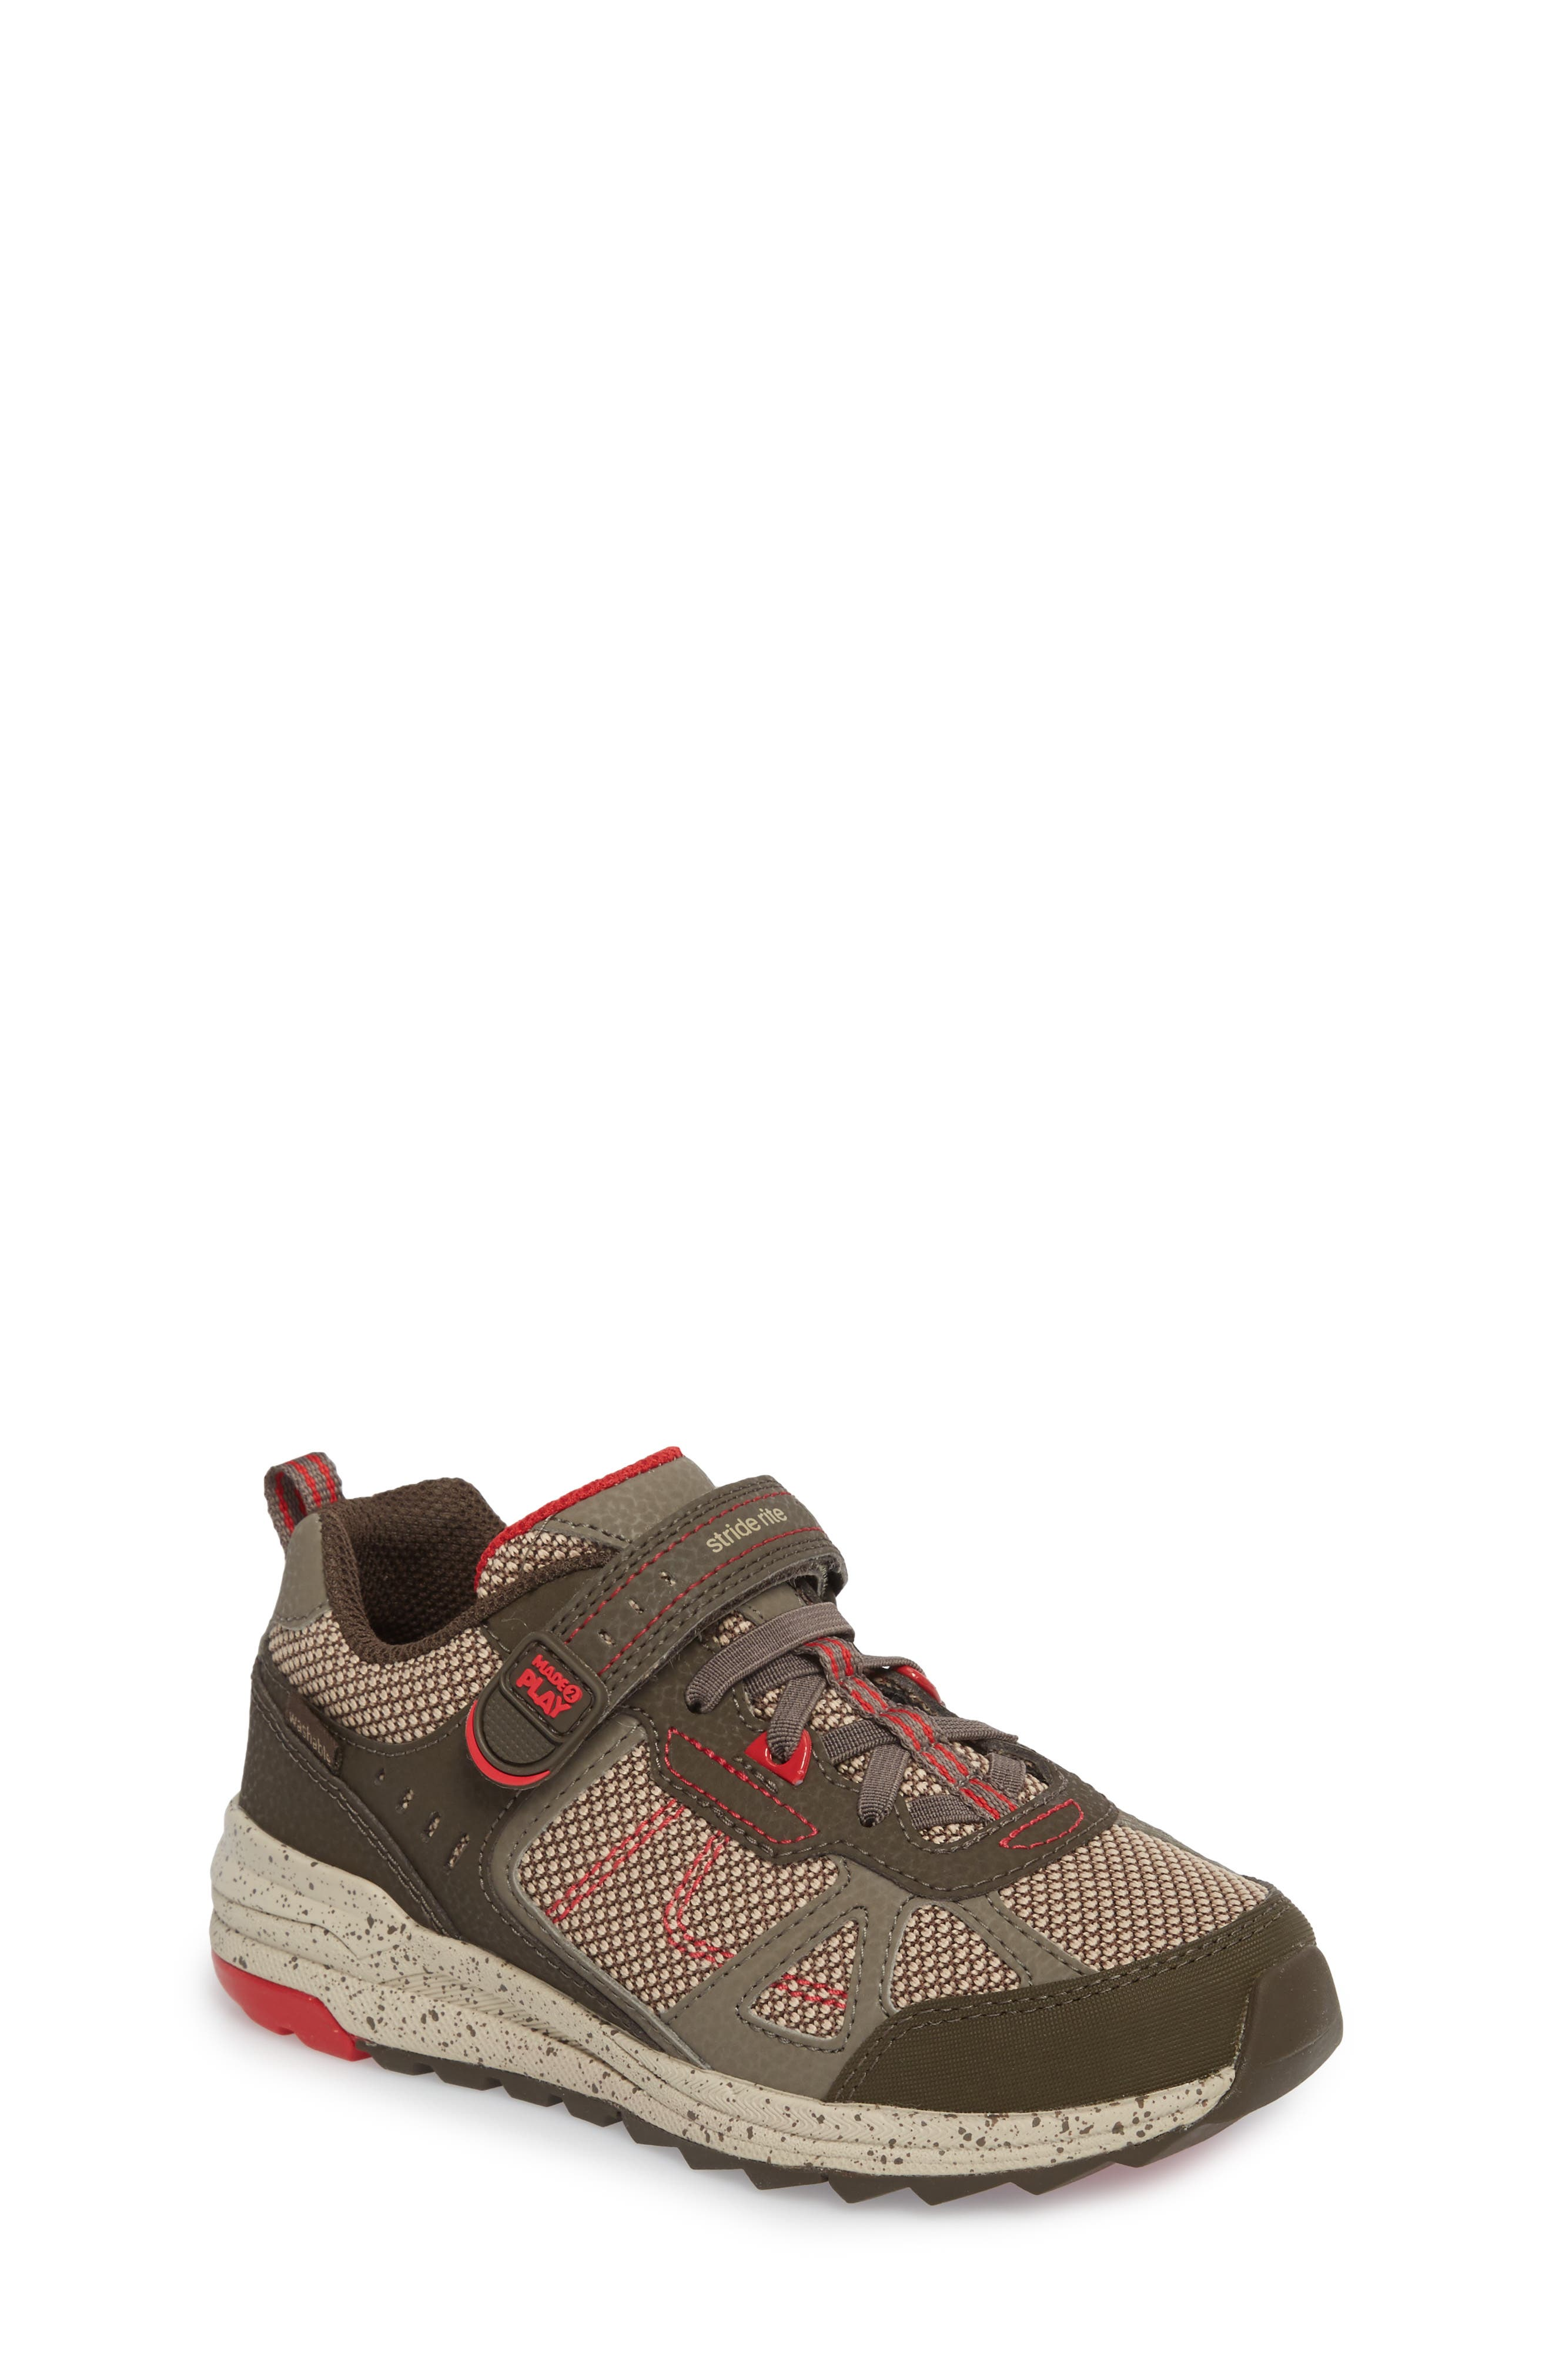 Made2Play<sup>®</sup> Owen Washable Sneaker,                             Main thumbnail 1, color,                             BROWN LEATHER/ TEXTILE